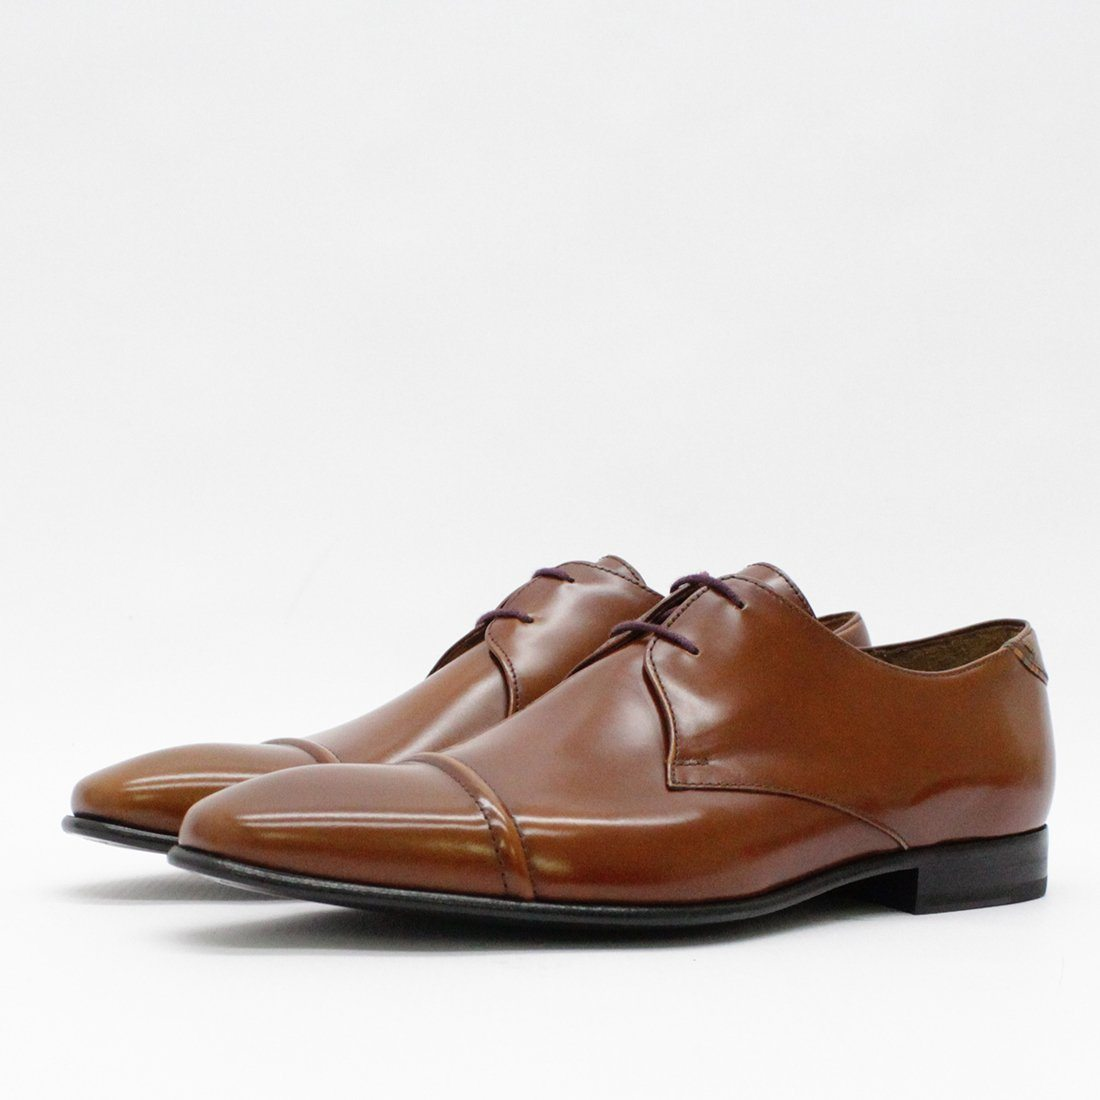 Paul Smith Shoes Derby High Shine Tan